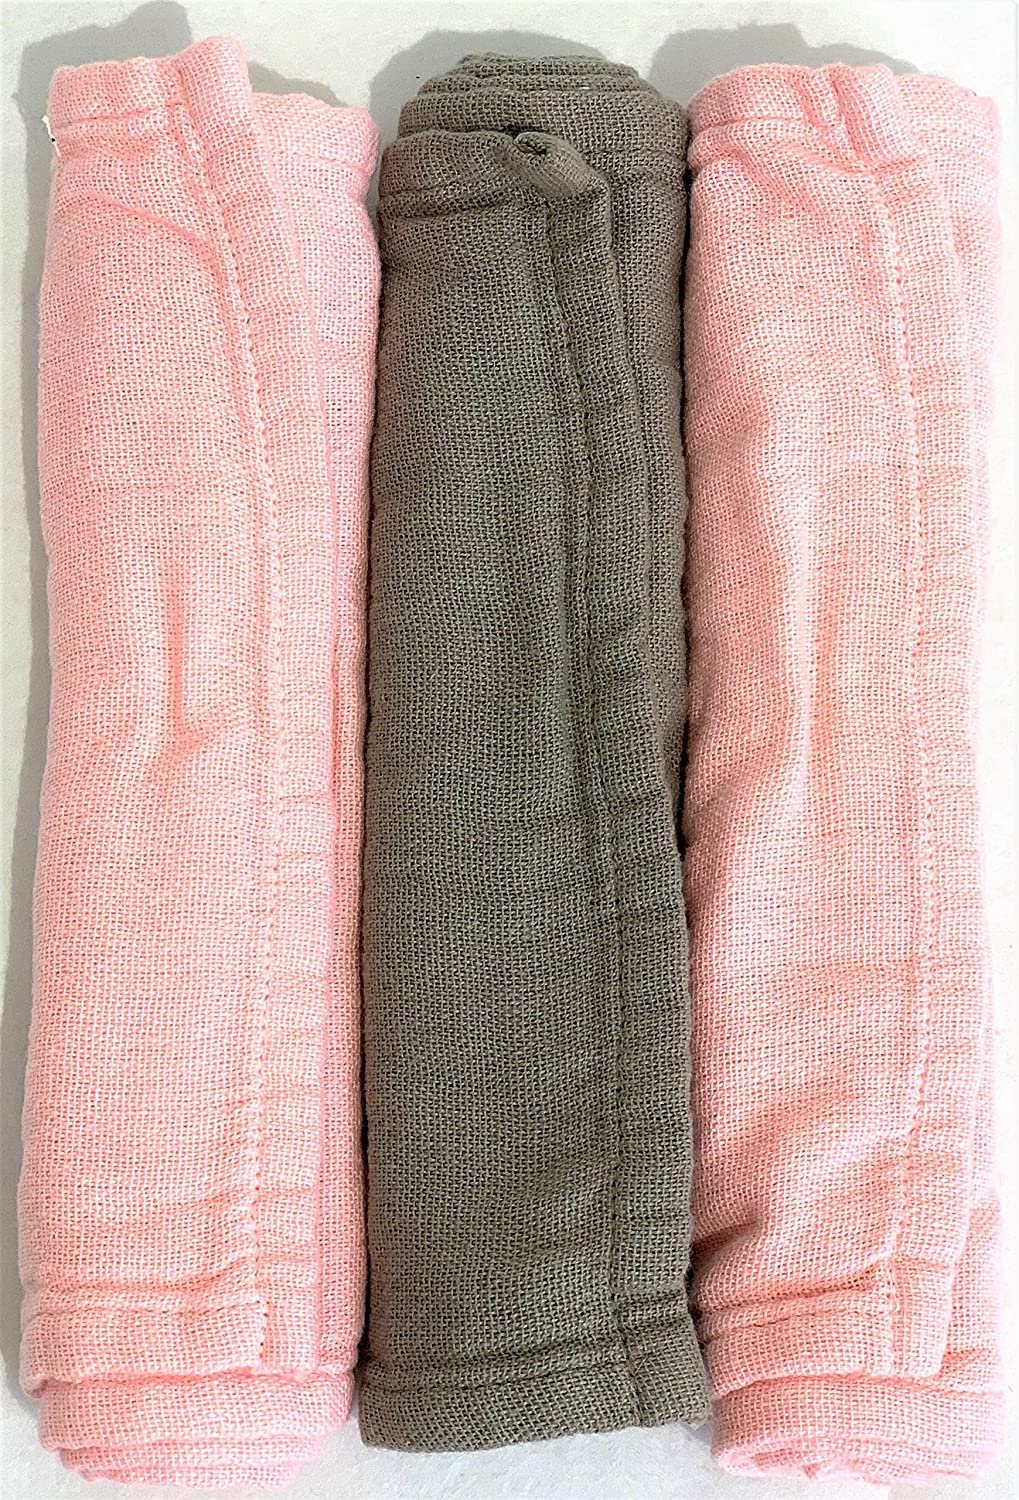 Cotton Baby Burp Cloths in Pink Albuquerque Mall 3 Colorado Springs Mall Pack of - Grey